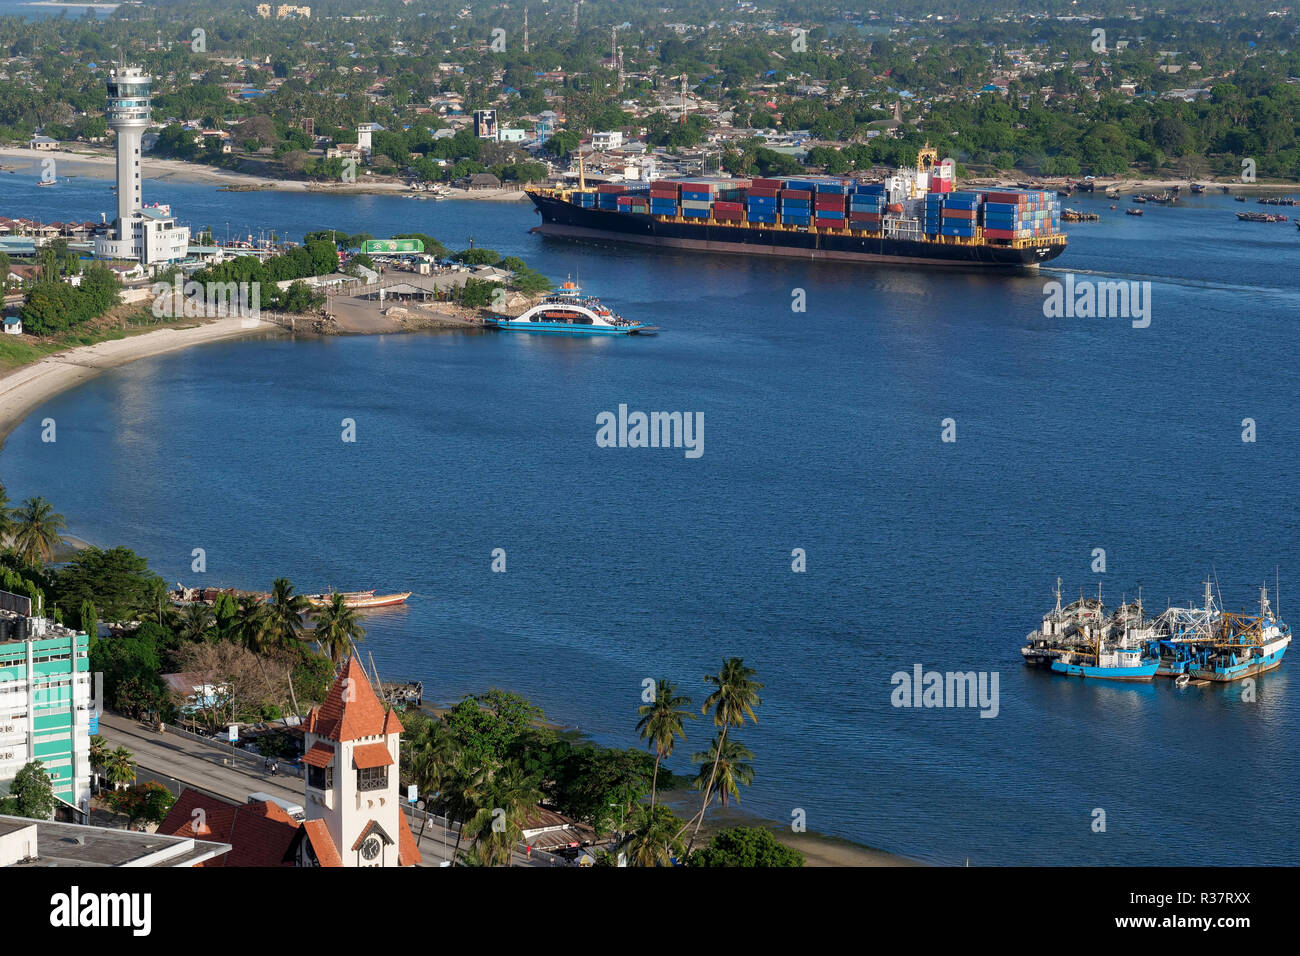 TANZANIA Daressalaam, bay and seaport, Pacific International Lines